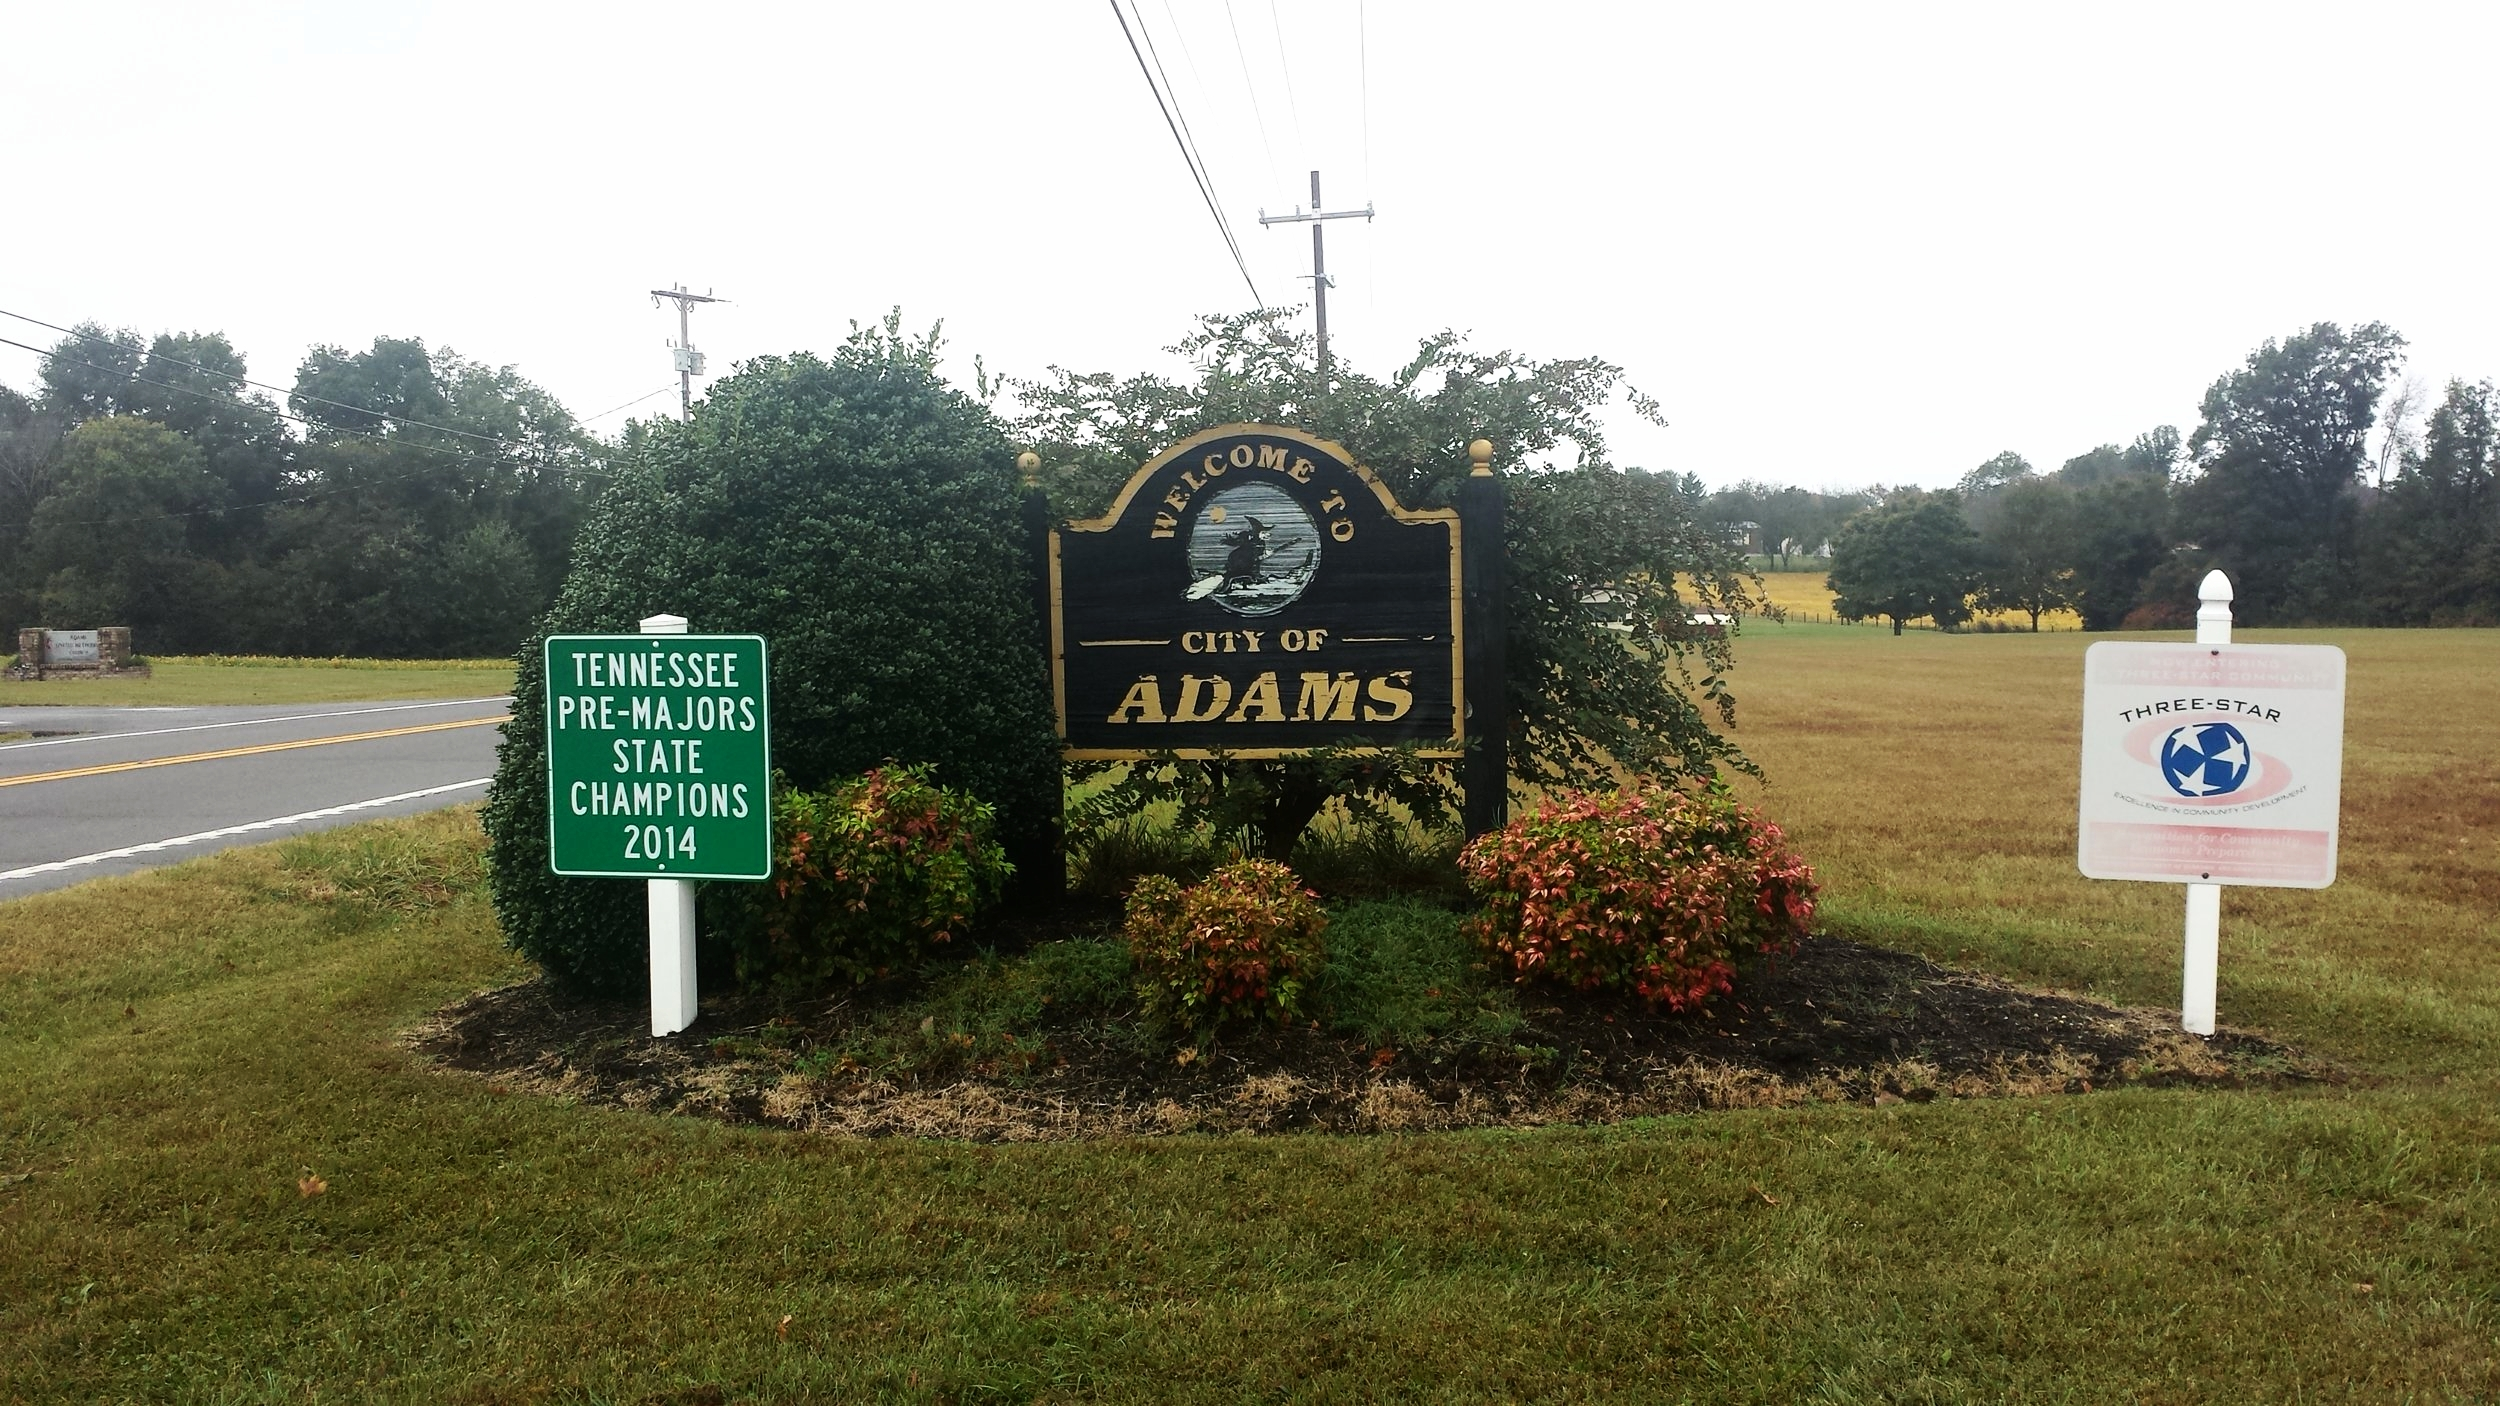 Entrance to the town of Adams, TN